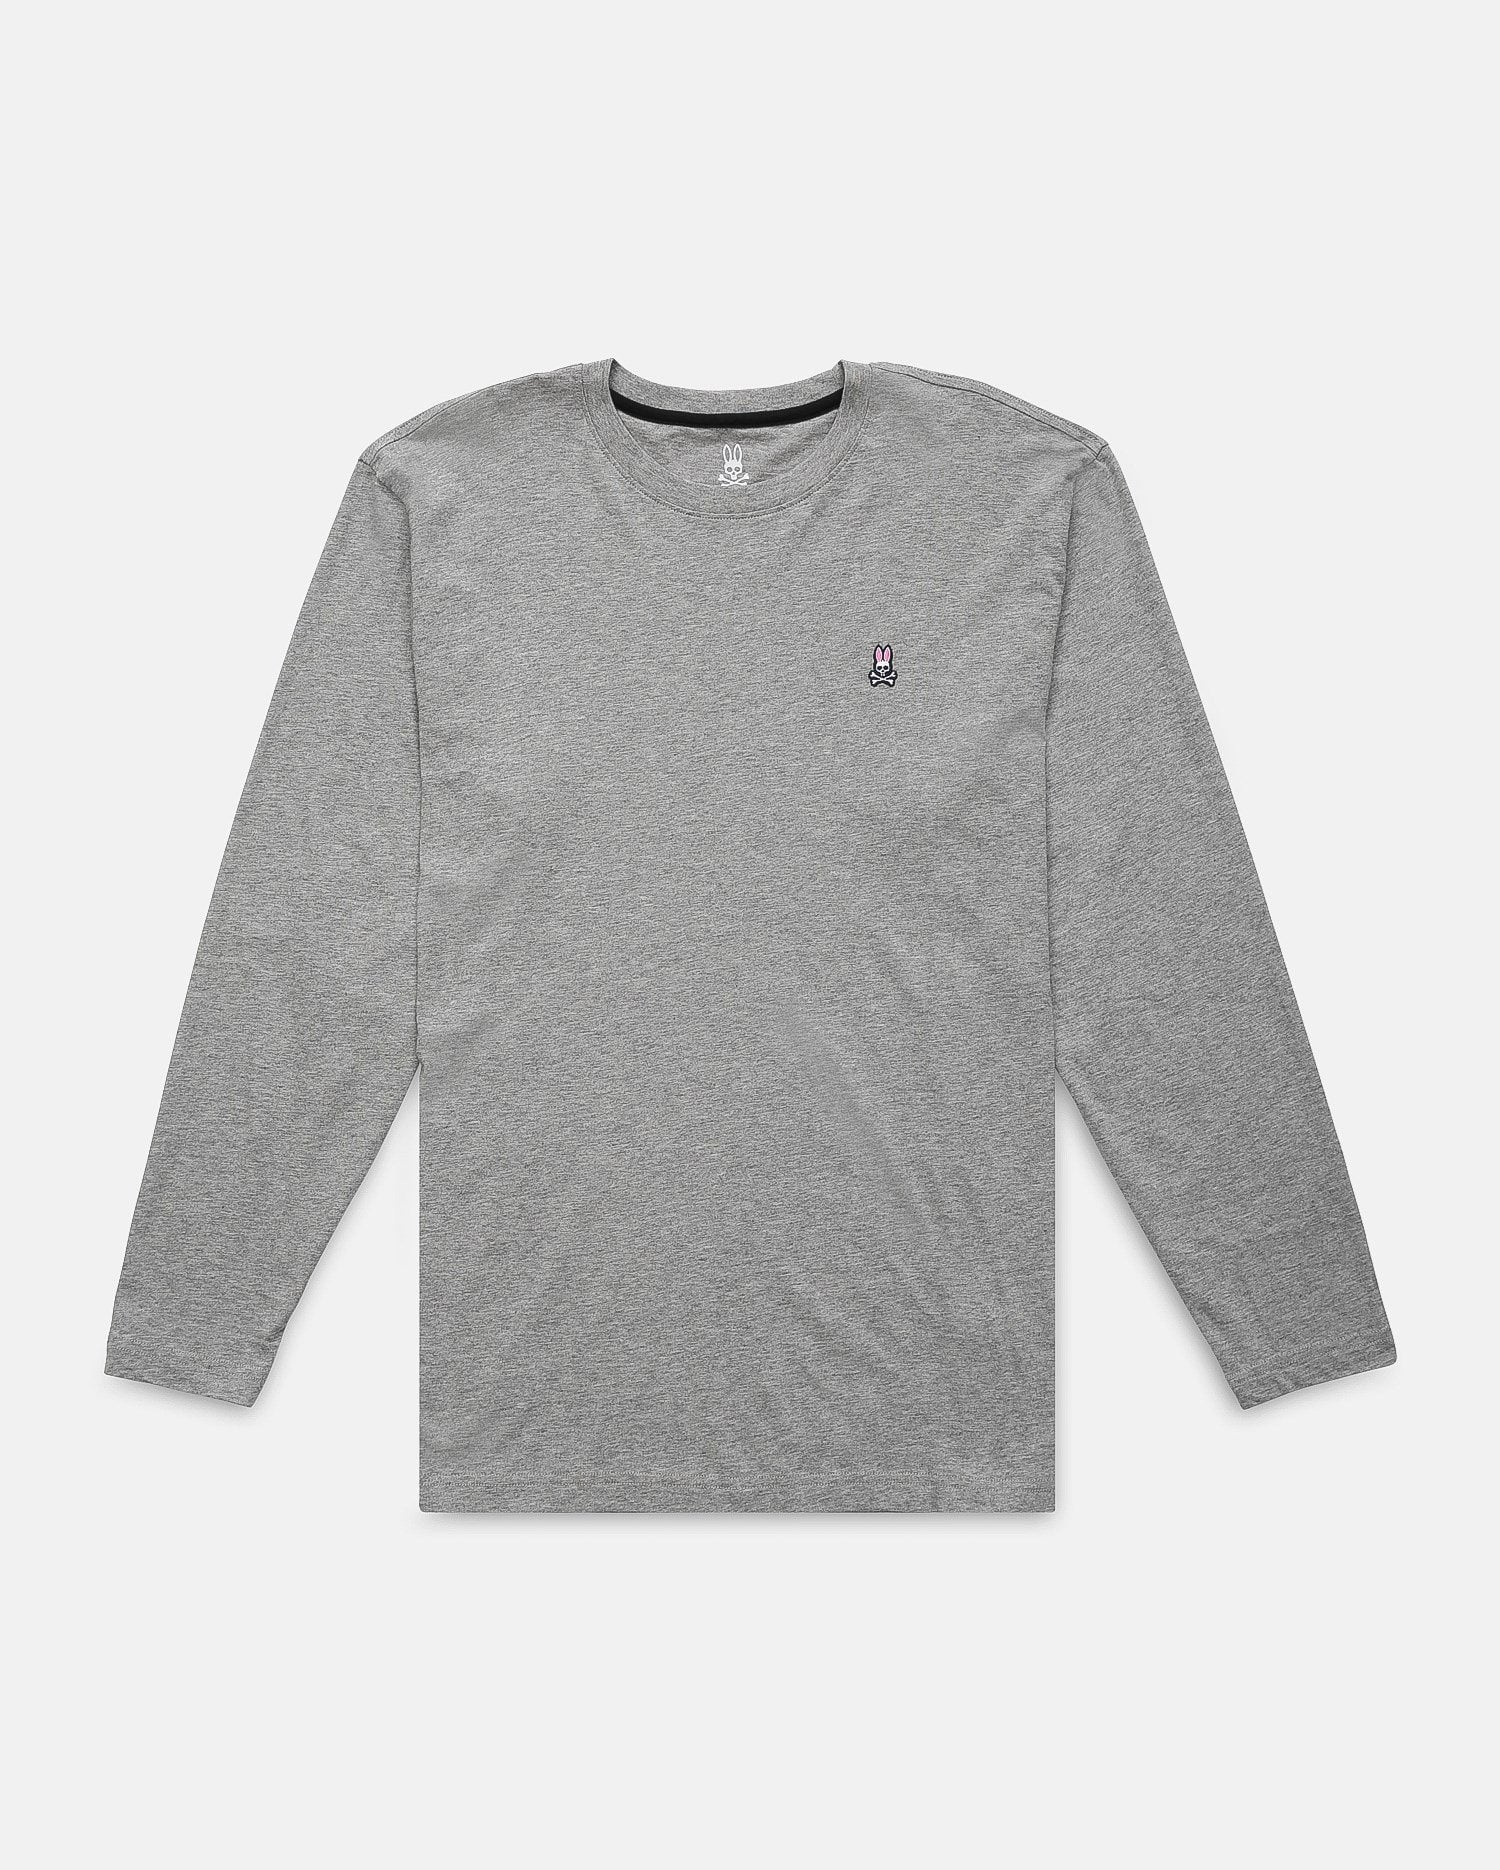 LONG SLEEVE CREW NECK TEE - B6T422ARPC - HEATHER GREY (HGY)